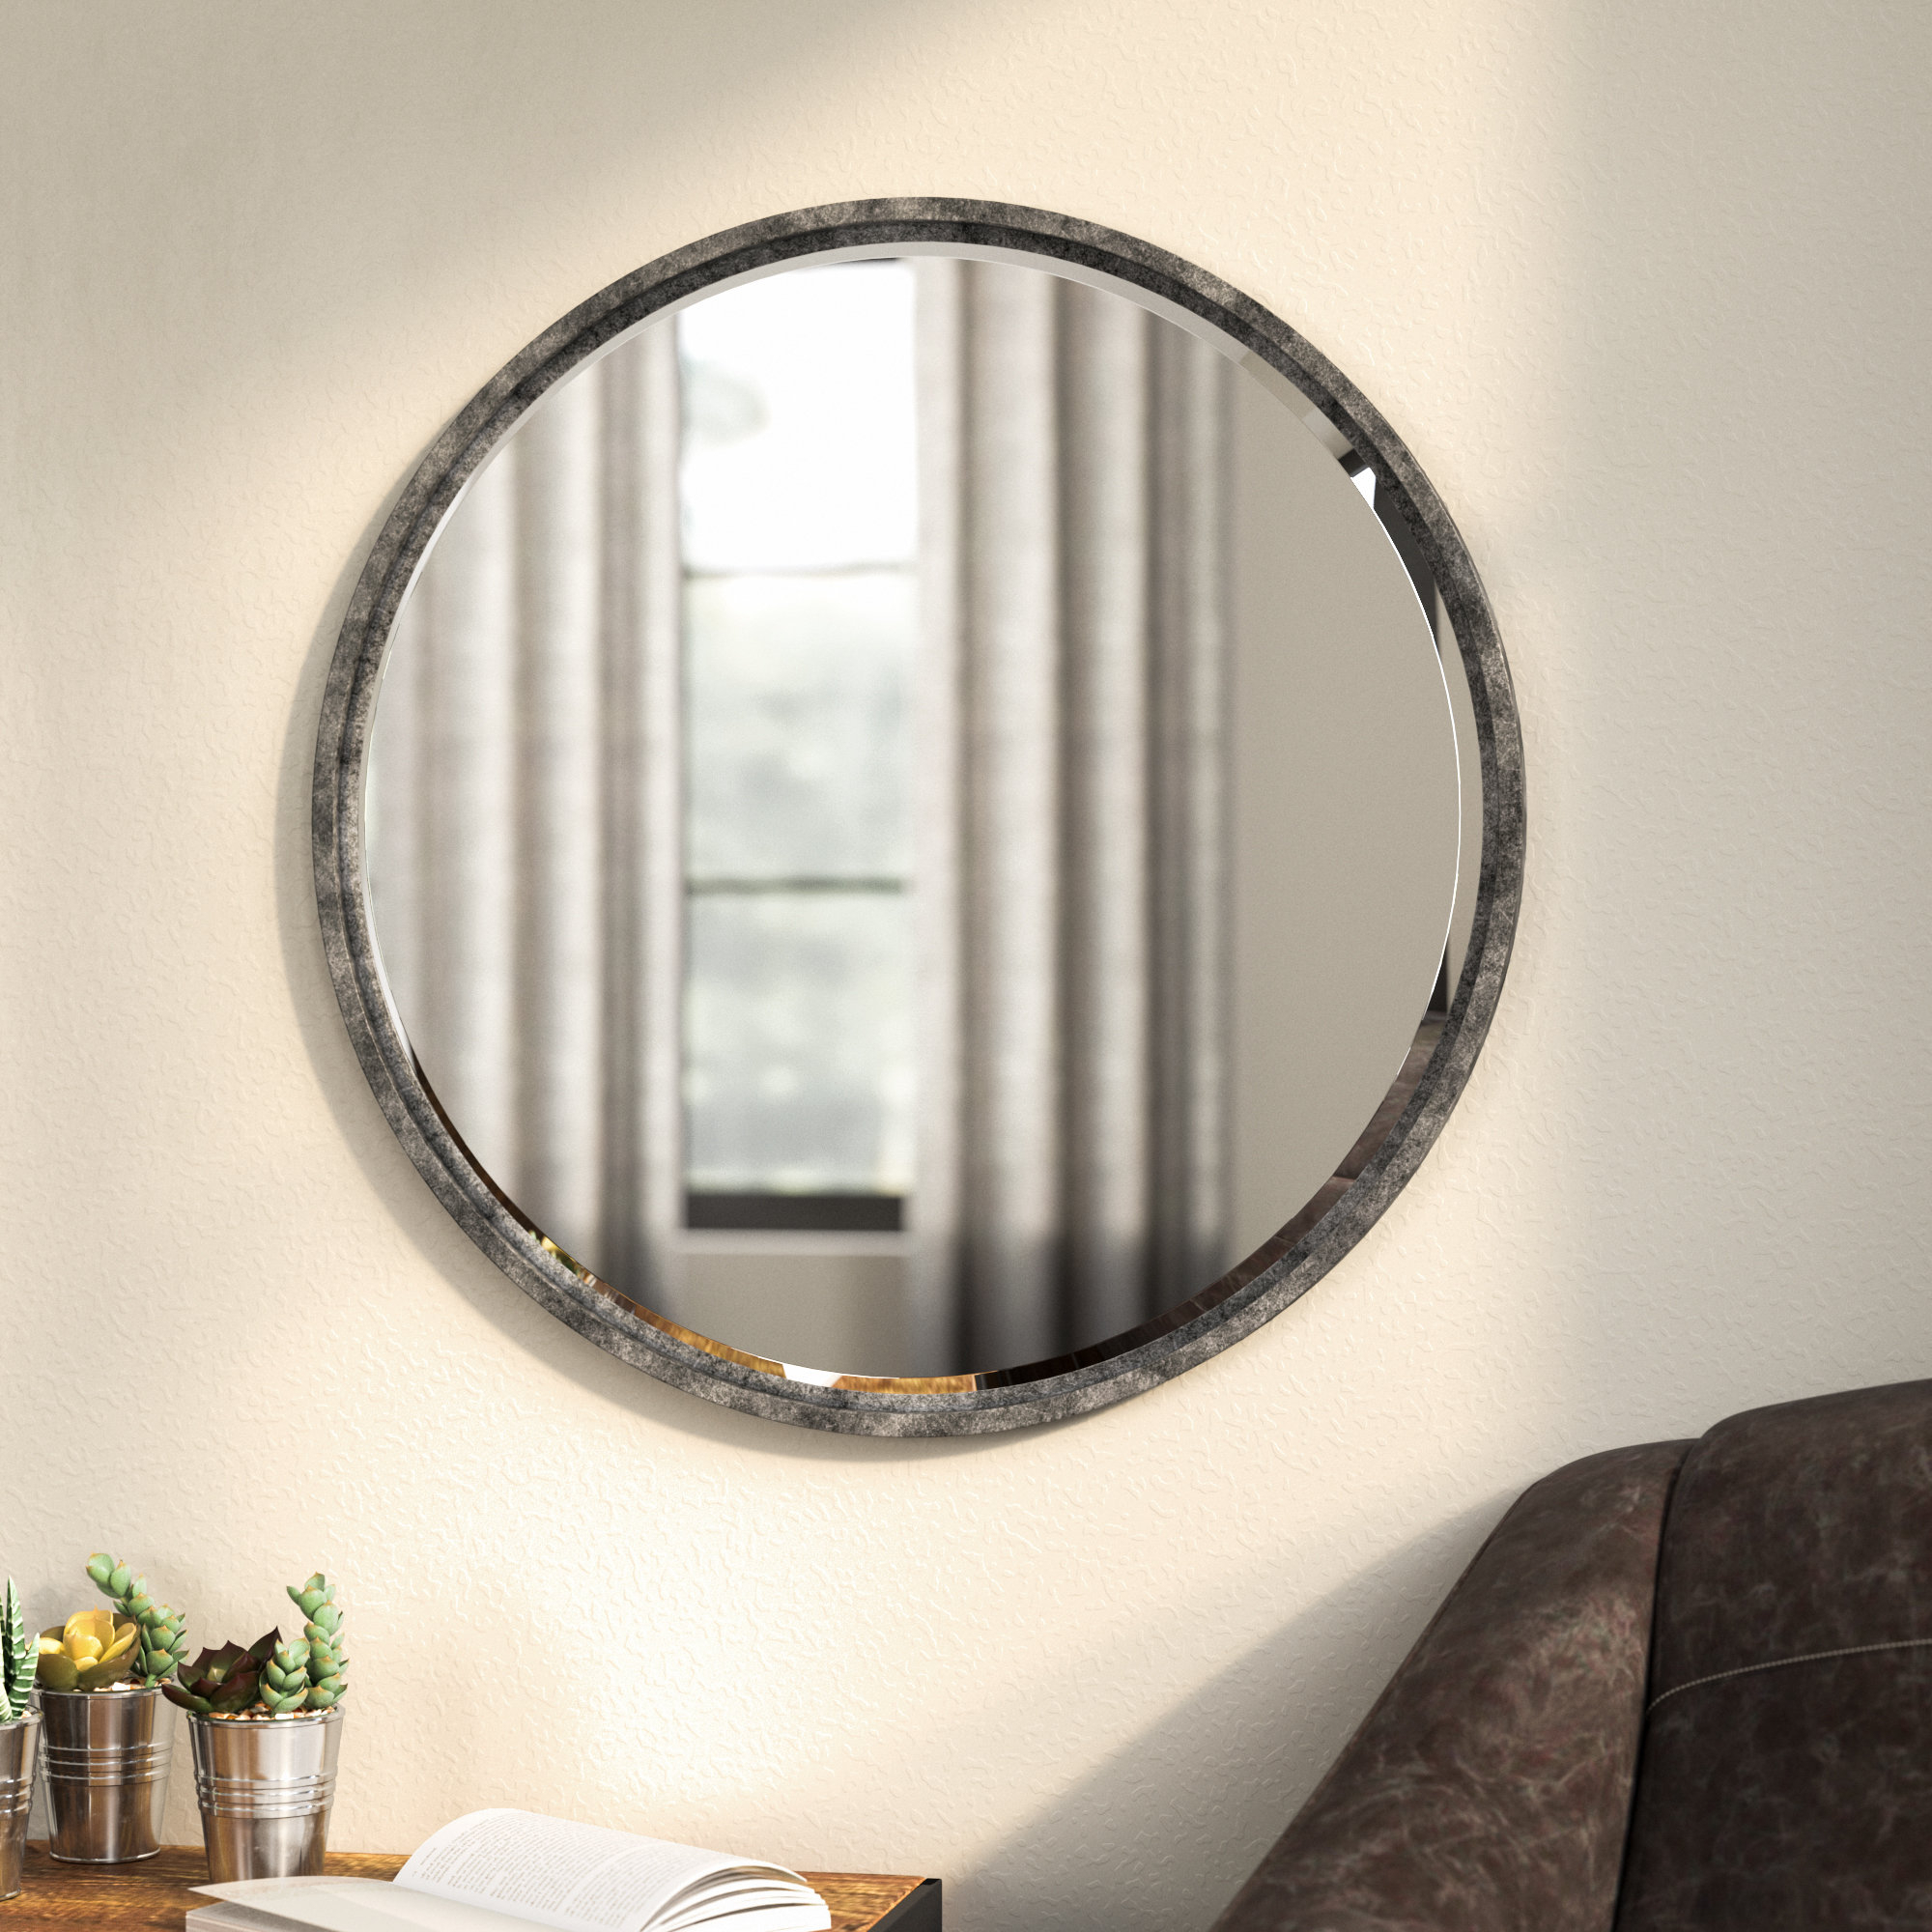 Favorite Accent Mirror Regarding Charters Towers Accent Mirrors (View 5 of 20)